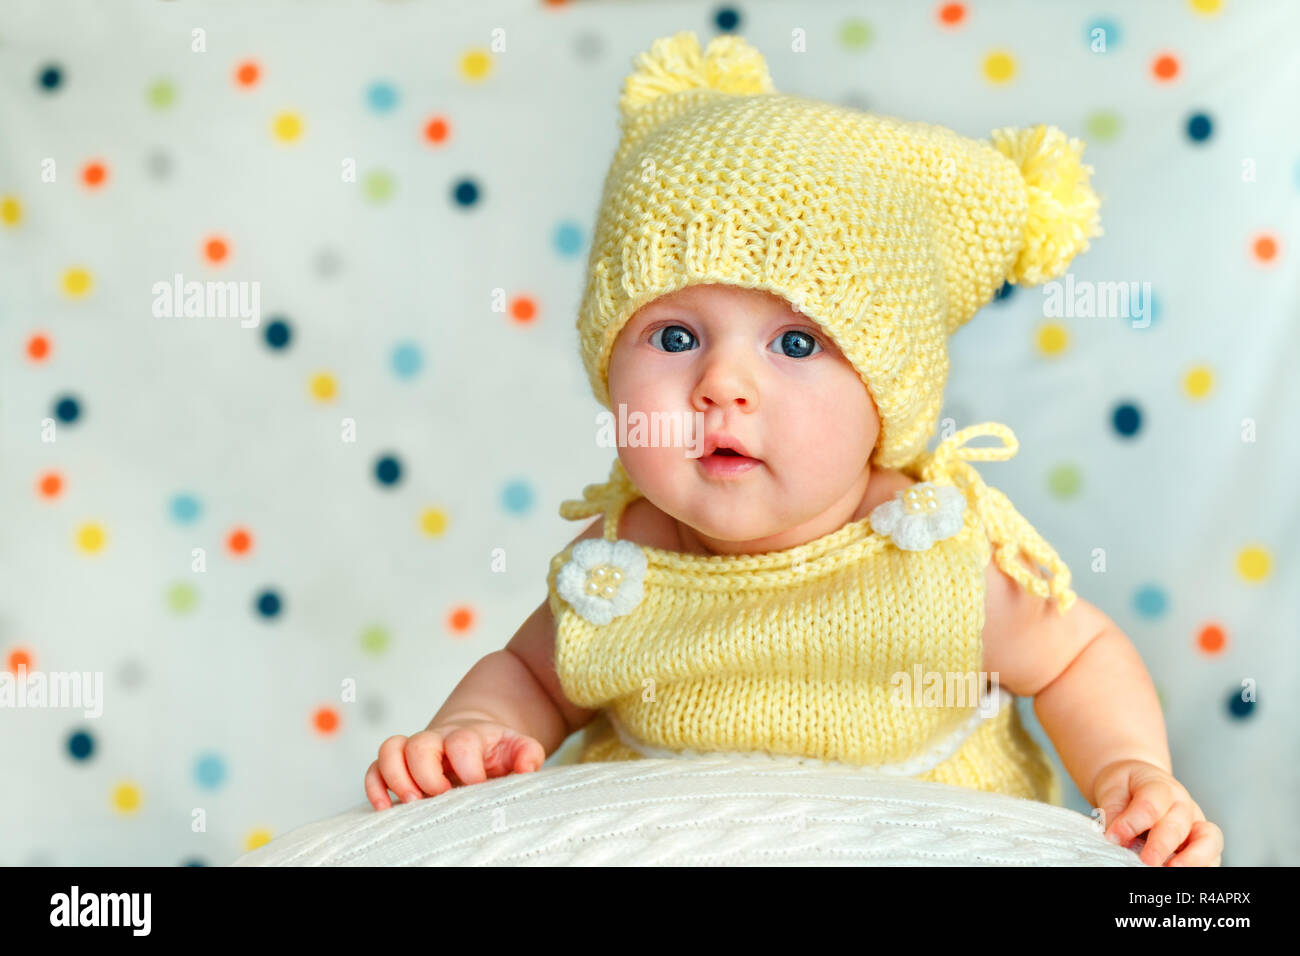 7e679b9cea9f Portrait of a cute newborn baby girl in knitted yellow bodysuit and ...